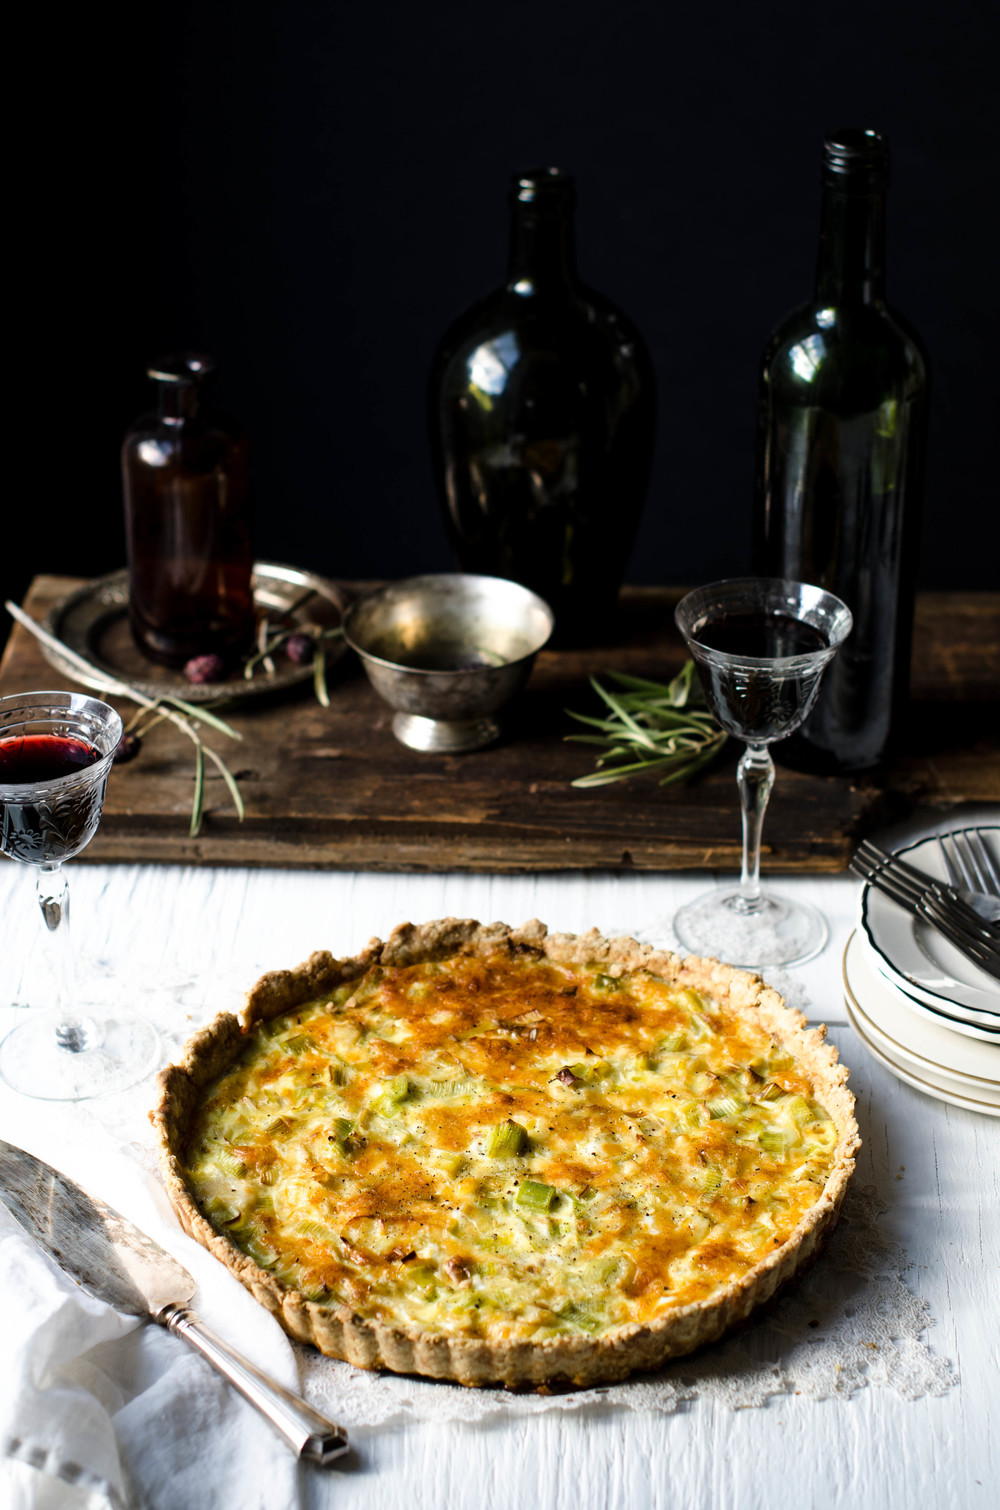 ROSE & IVY Journal Leek & Gruyere Quiche